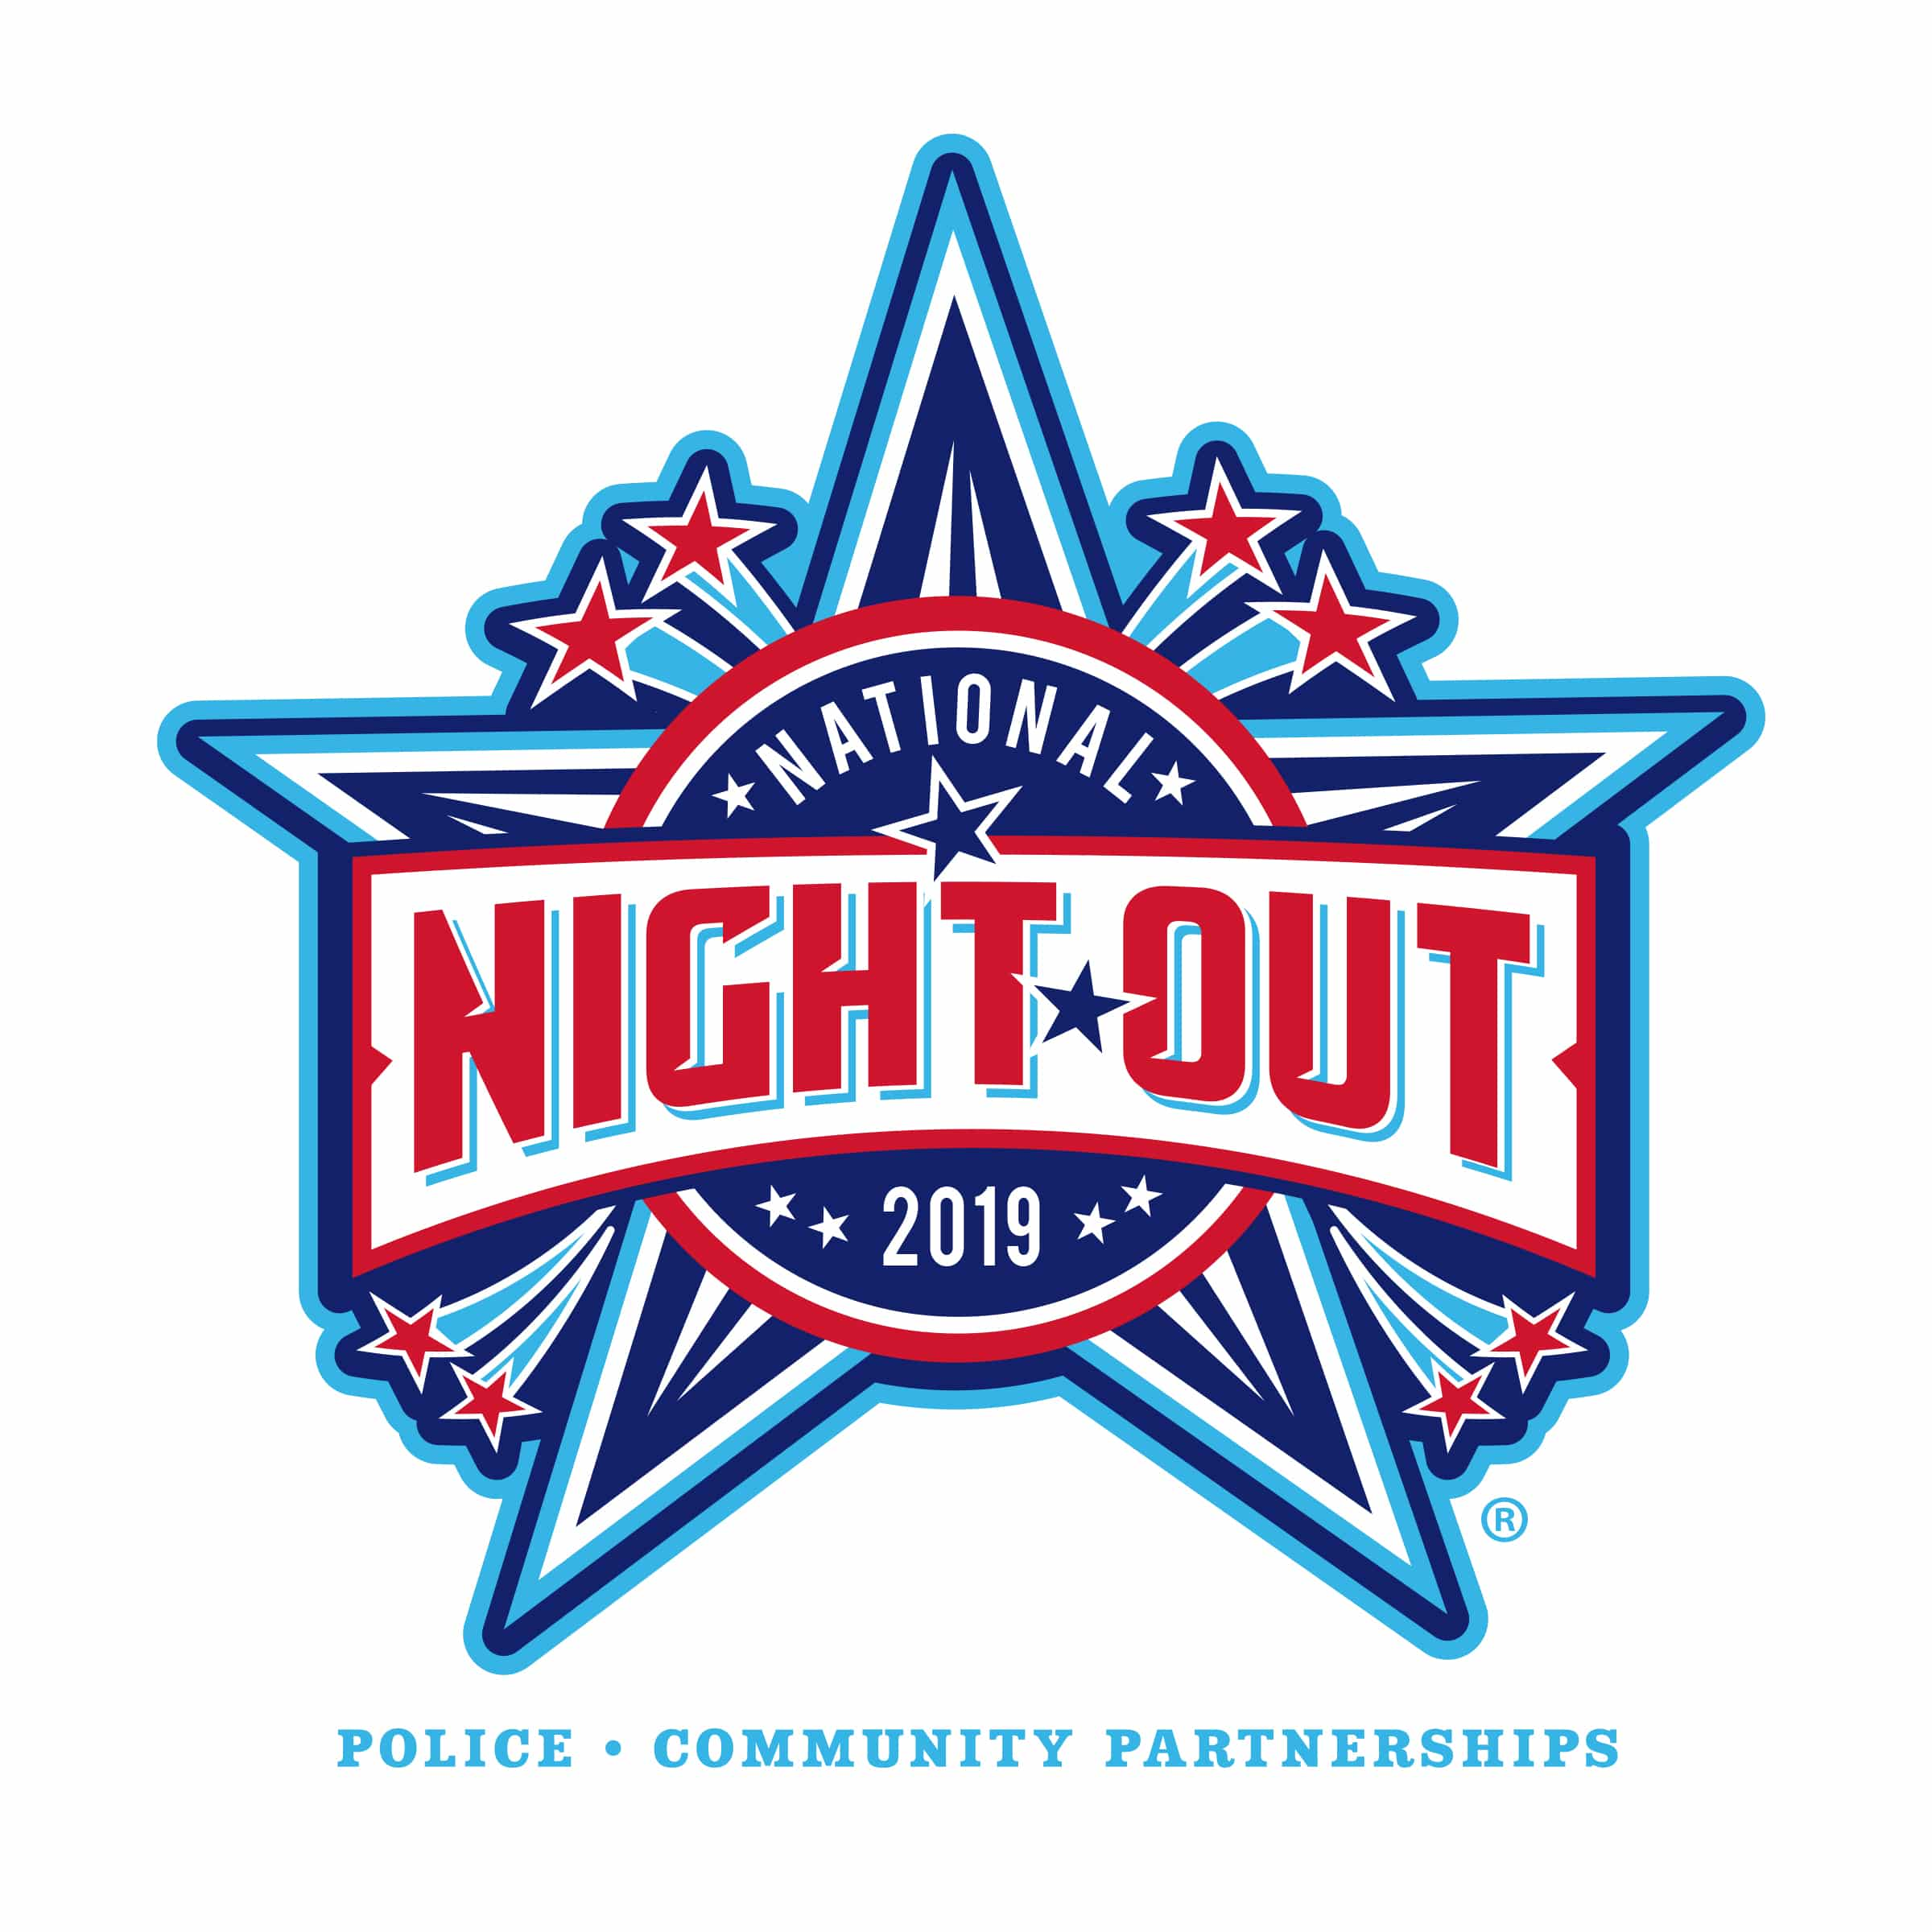 National Night Out - Wilmington, Massachusetts Police Department